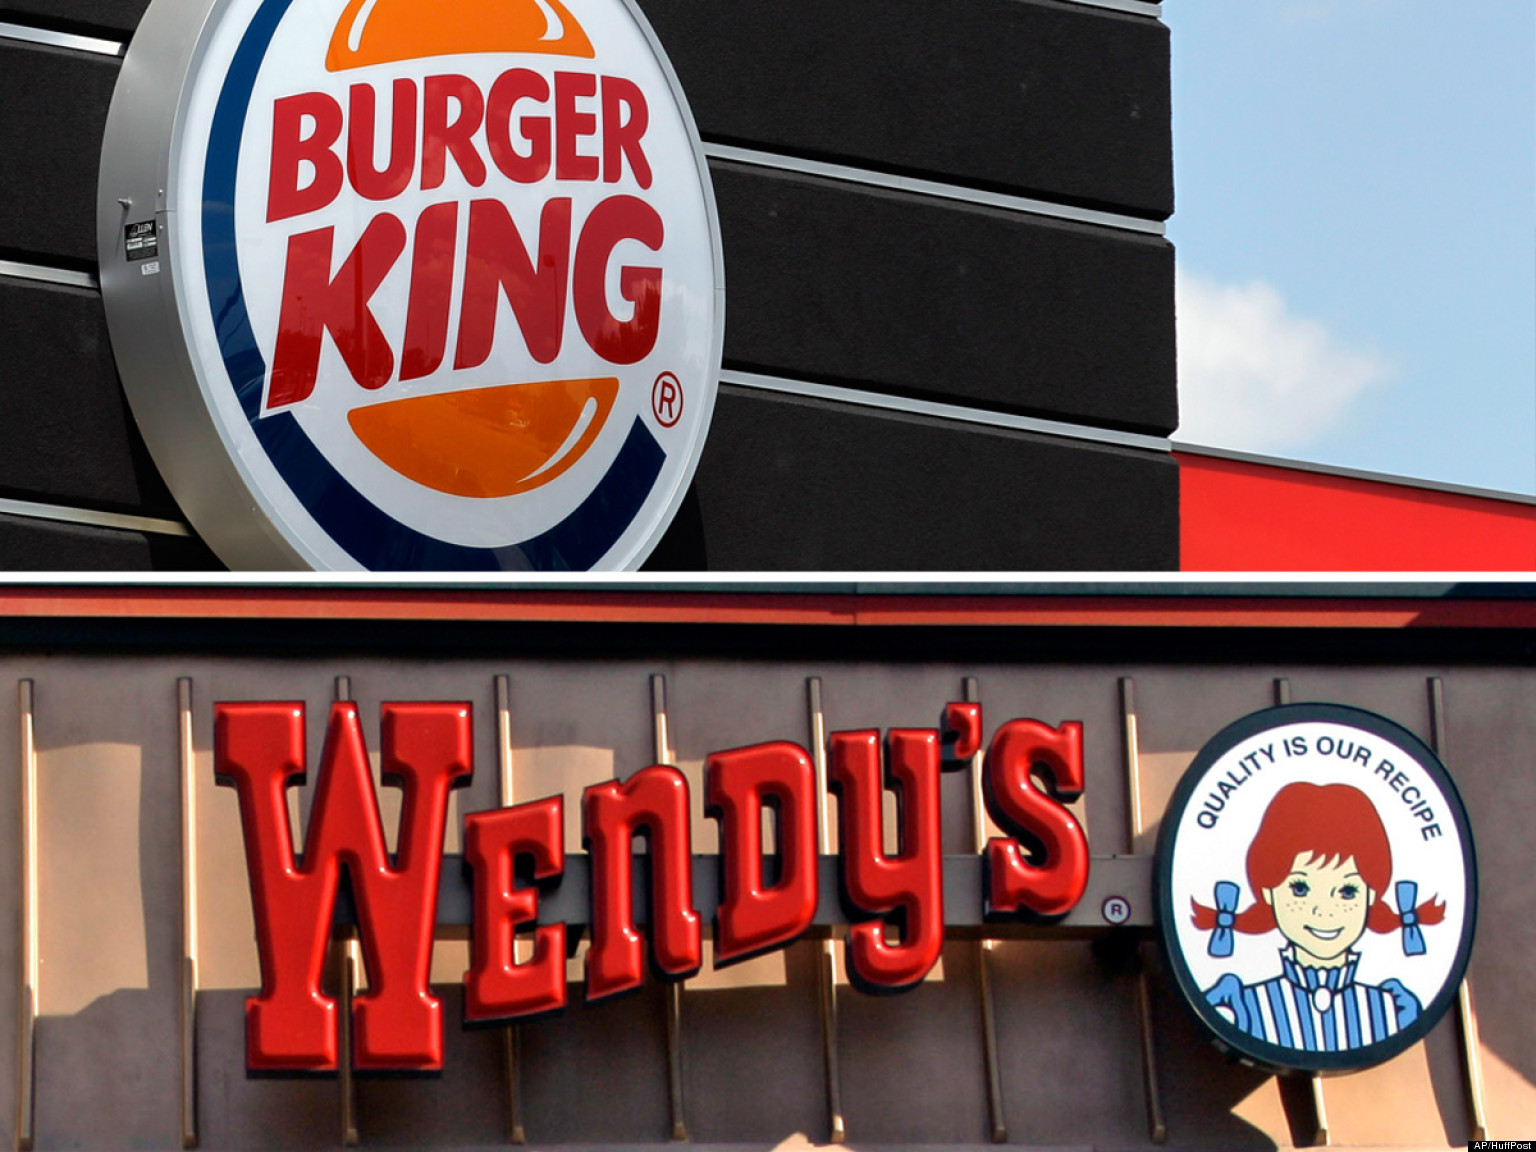 o-BURGER-KING-WENDYS-facebook